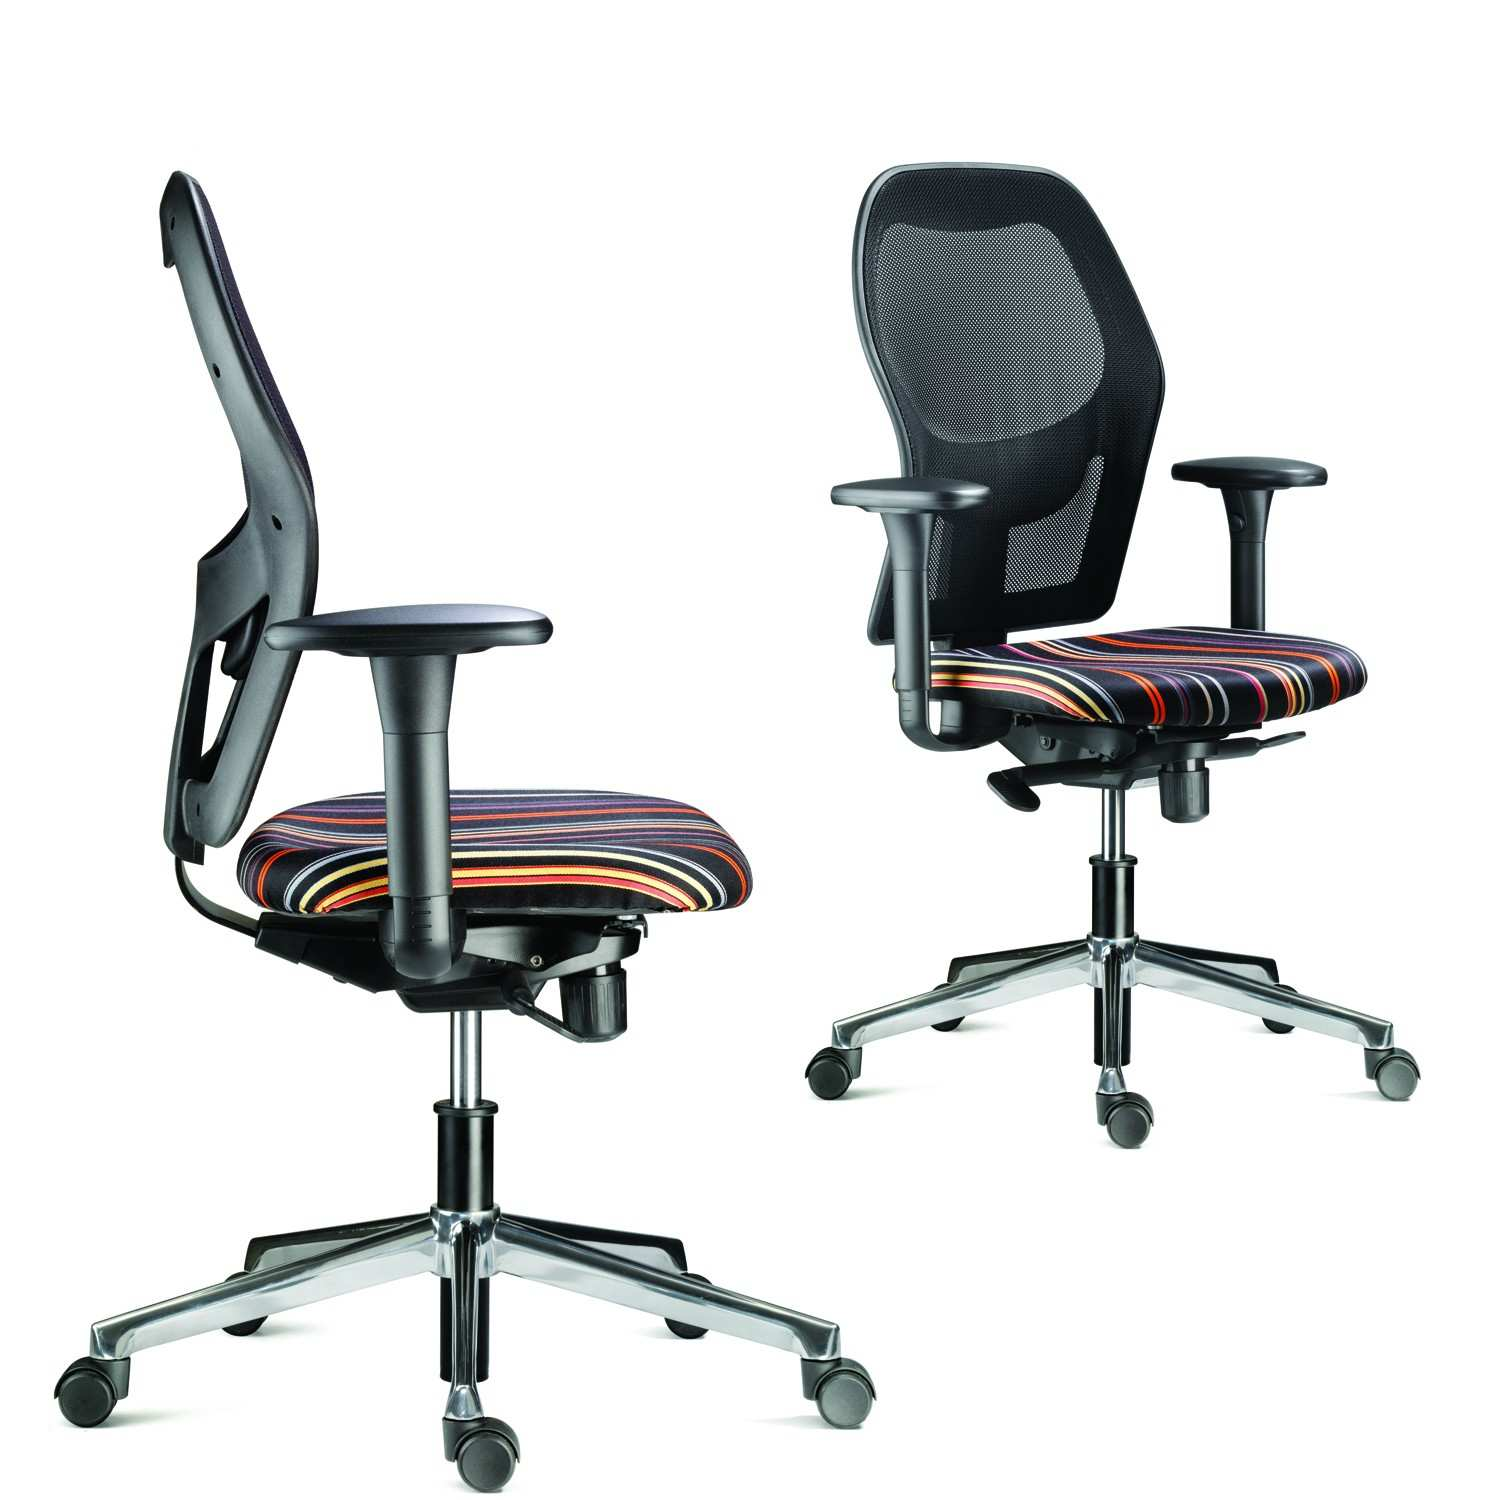 ofd_pall_office_chair_readyinstock_offie_furniture_dubai_uae2